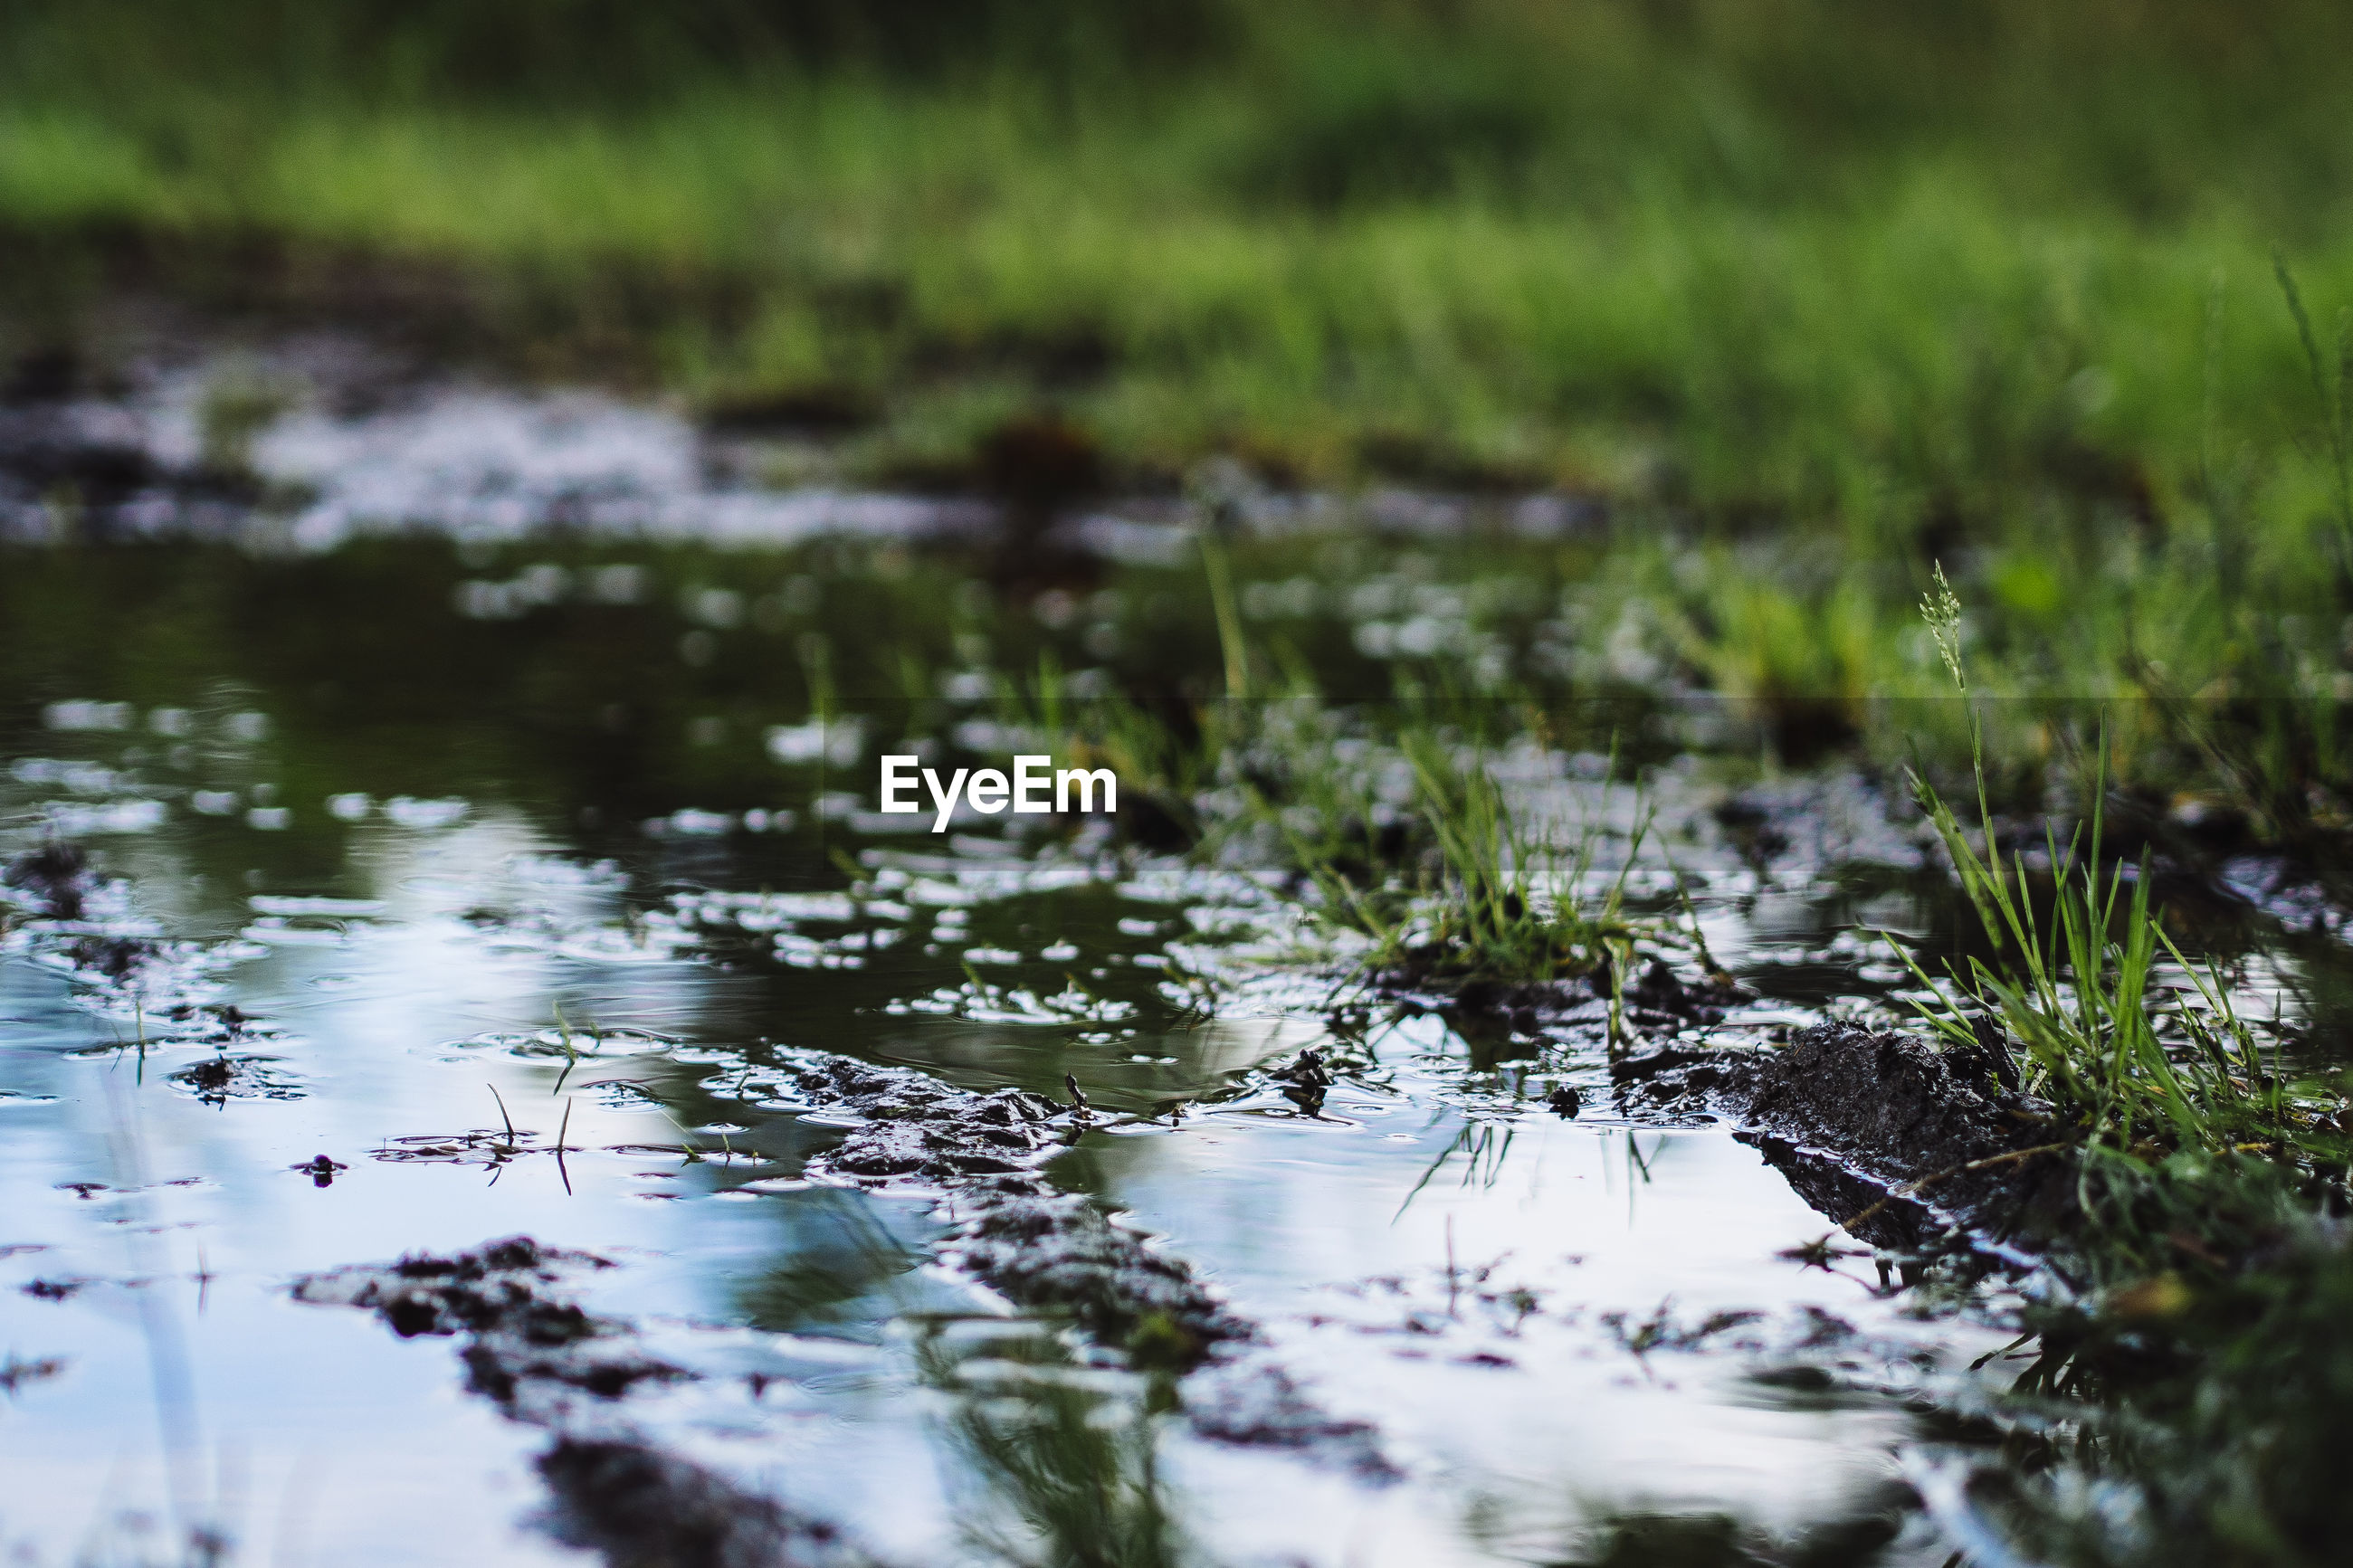 water, reflection, lake, grass, tranquility, nature, waterfront, plant, tranquil scene, beauty in nature, growth, wet, selective focus, outdoors, day, green color, pond, no people, river, scenics